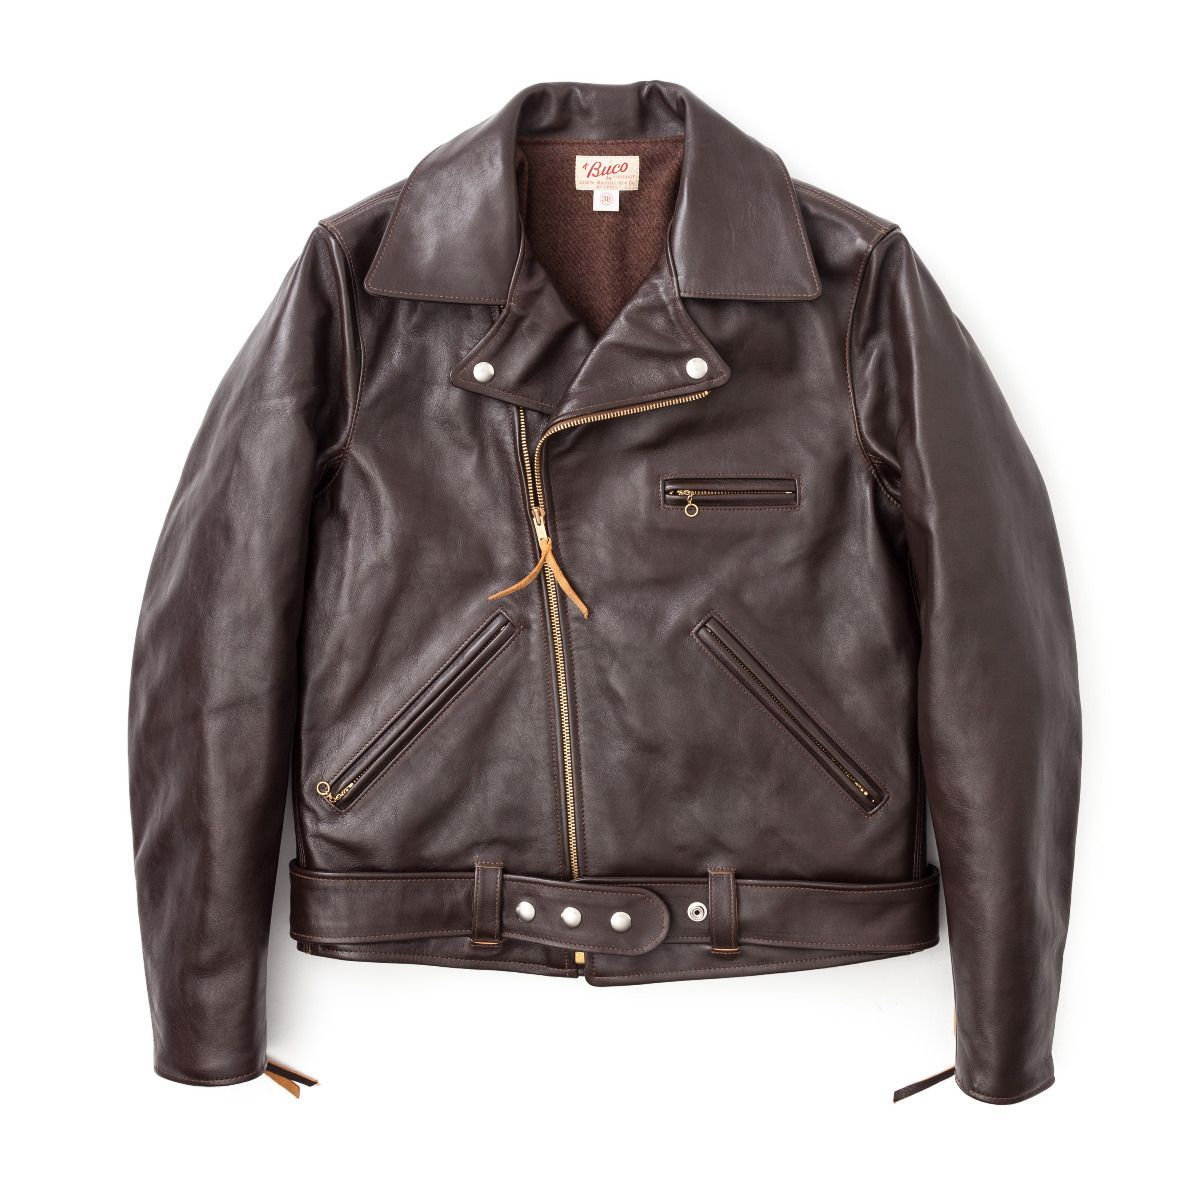 Buco Jh 1 Horsehide Leather Jacket Brown Leather Jacket Jackets Leather [ 1200 x 1200 Pixel ]